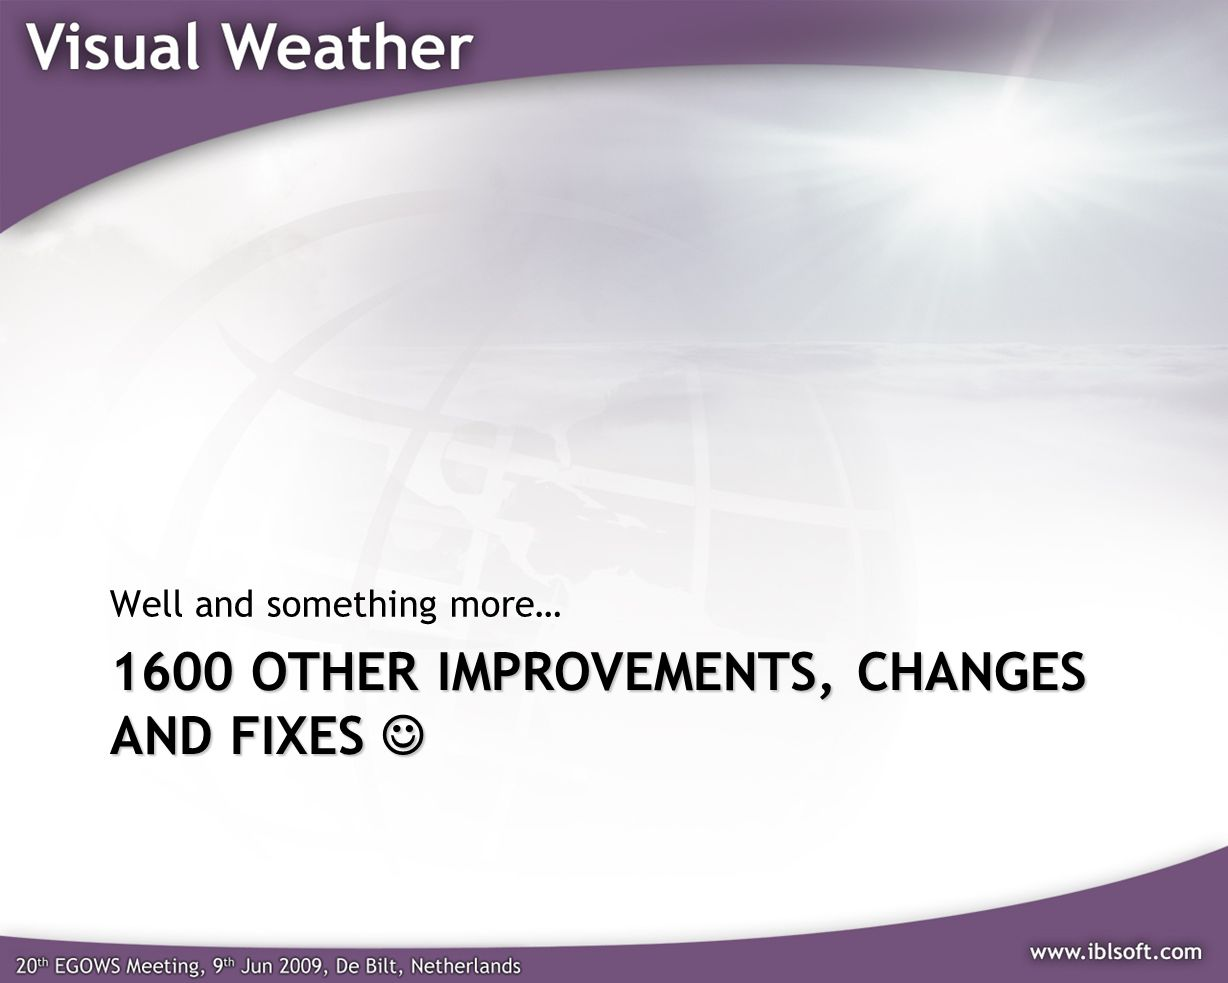 1600 OTHER IMPROVEMENTS, CHANGES AND FIXES 1600 OTHER IMPROVEMENTS, CHANGES AND FIXES Well and something more…